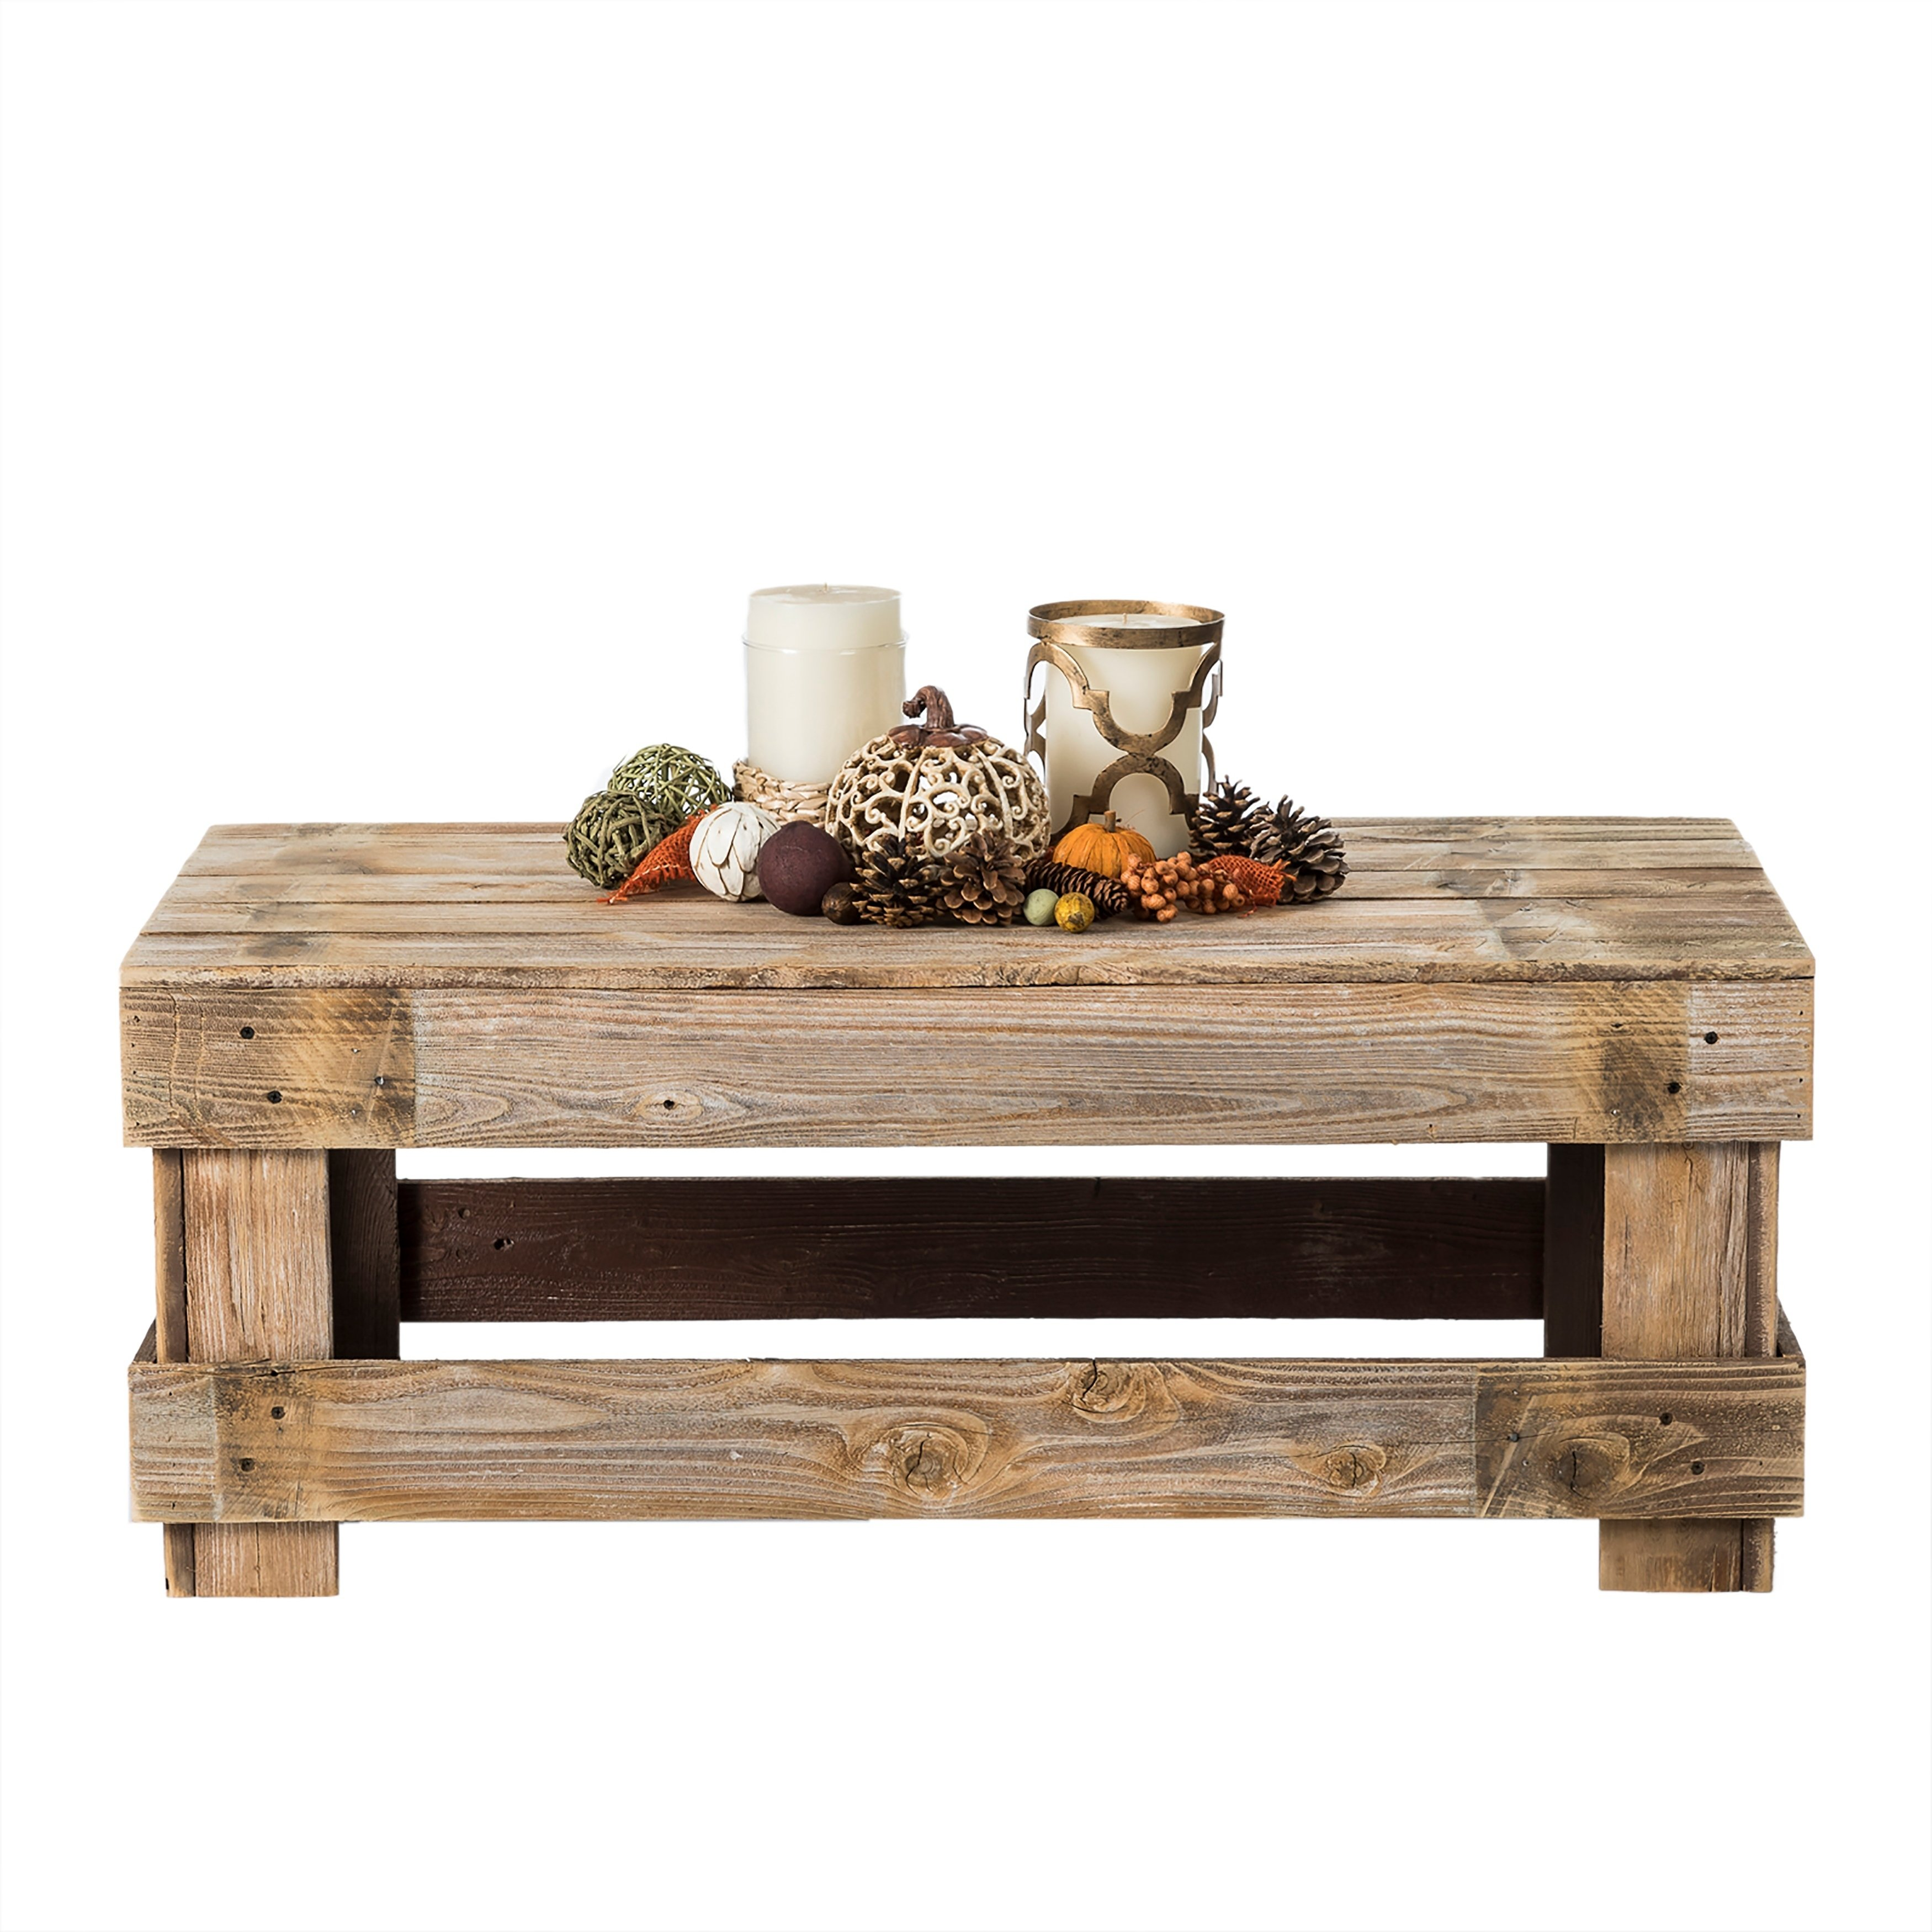 del hutson designs barnwood coffee table free shipping today accent leick furniture mission entry decor ideas uttermost henzler end brass and marble side outdoor tables pier lamps